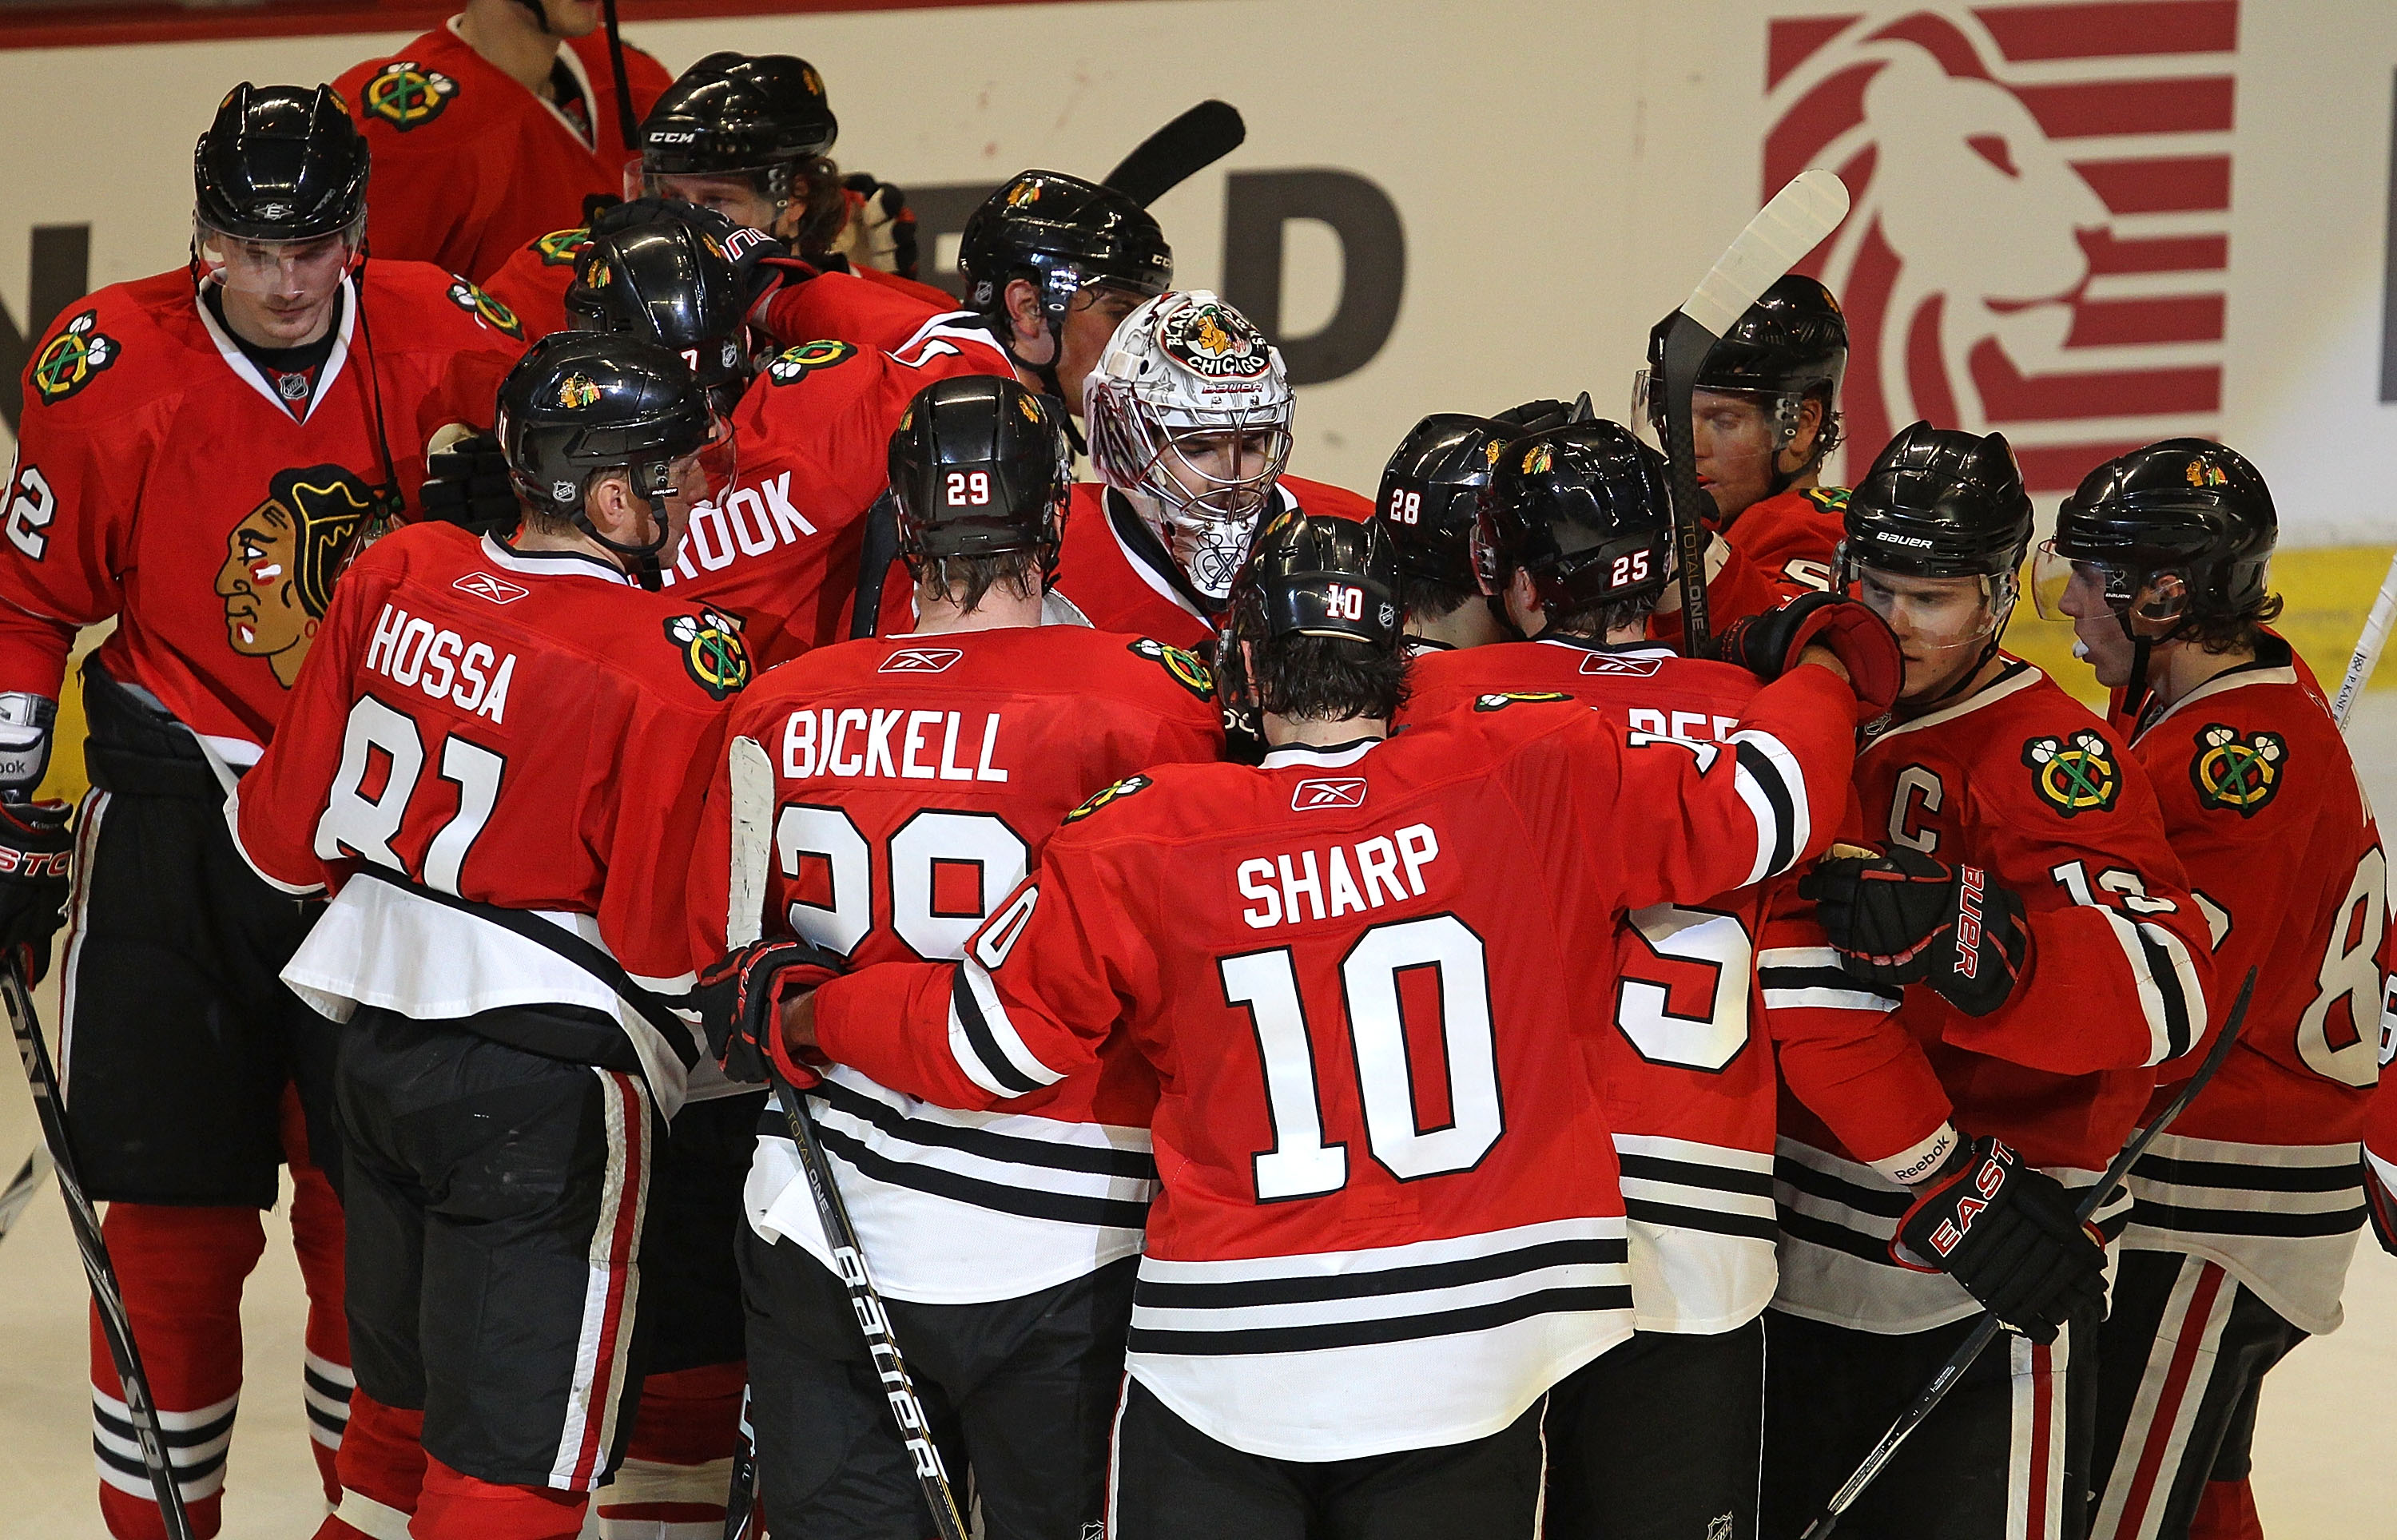 CHICAGO, IL - FEBRUARY 27: Corey Crawford #50 of the Chicago Blackhawks (center with mask) is surrounded by teammates including Marian Hossa #81, Bryan Bickell #29 and Patrick Sharp #10 after a win over the Phoenix Coyotes at the United Center on February